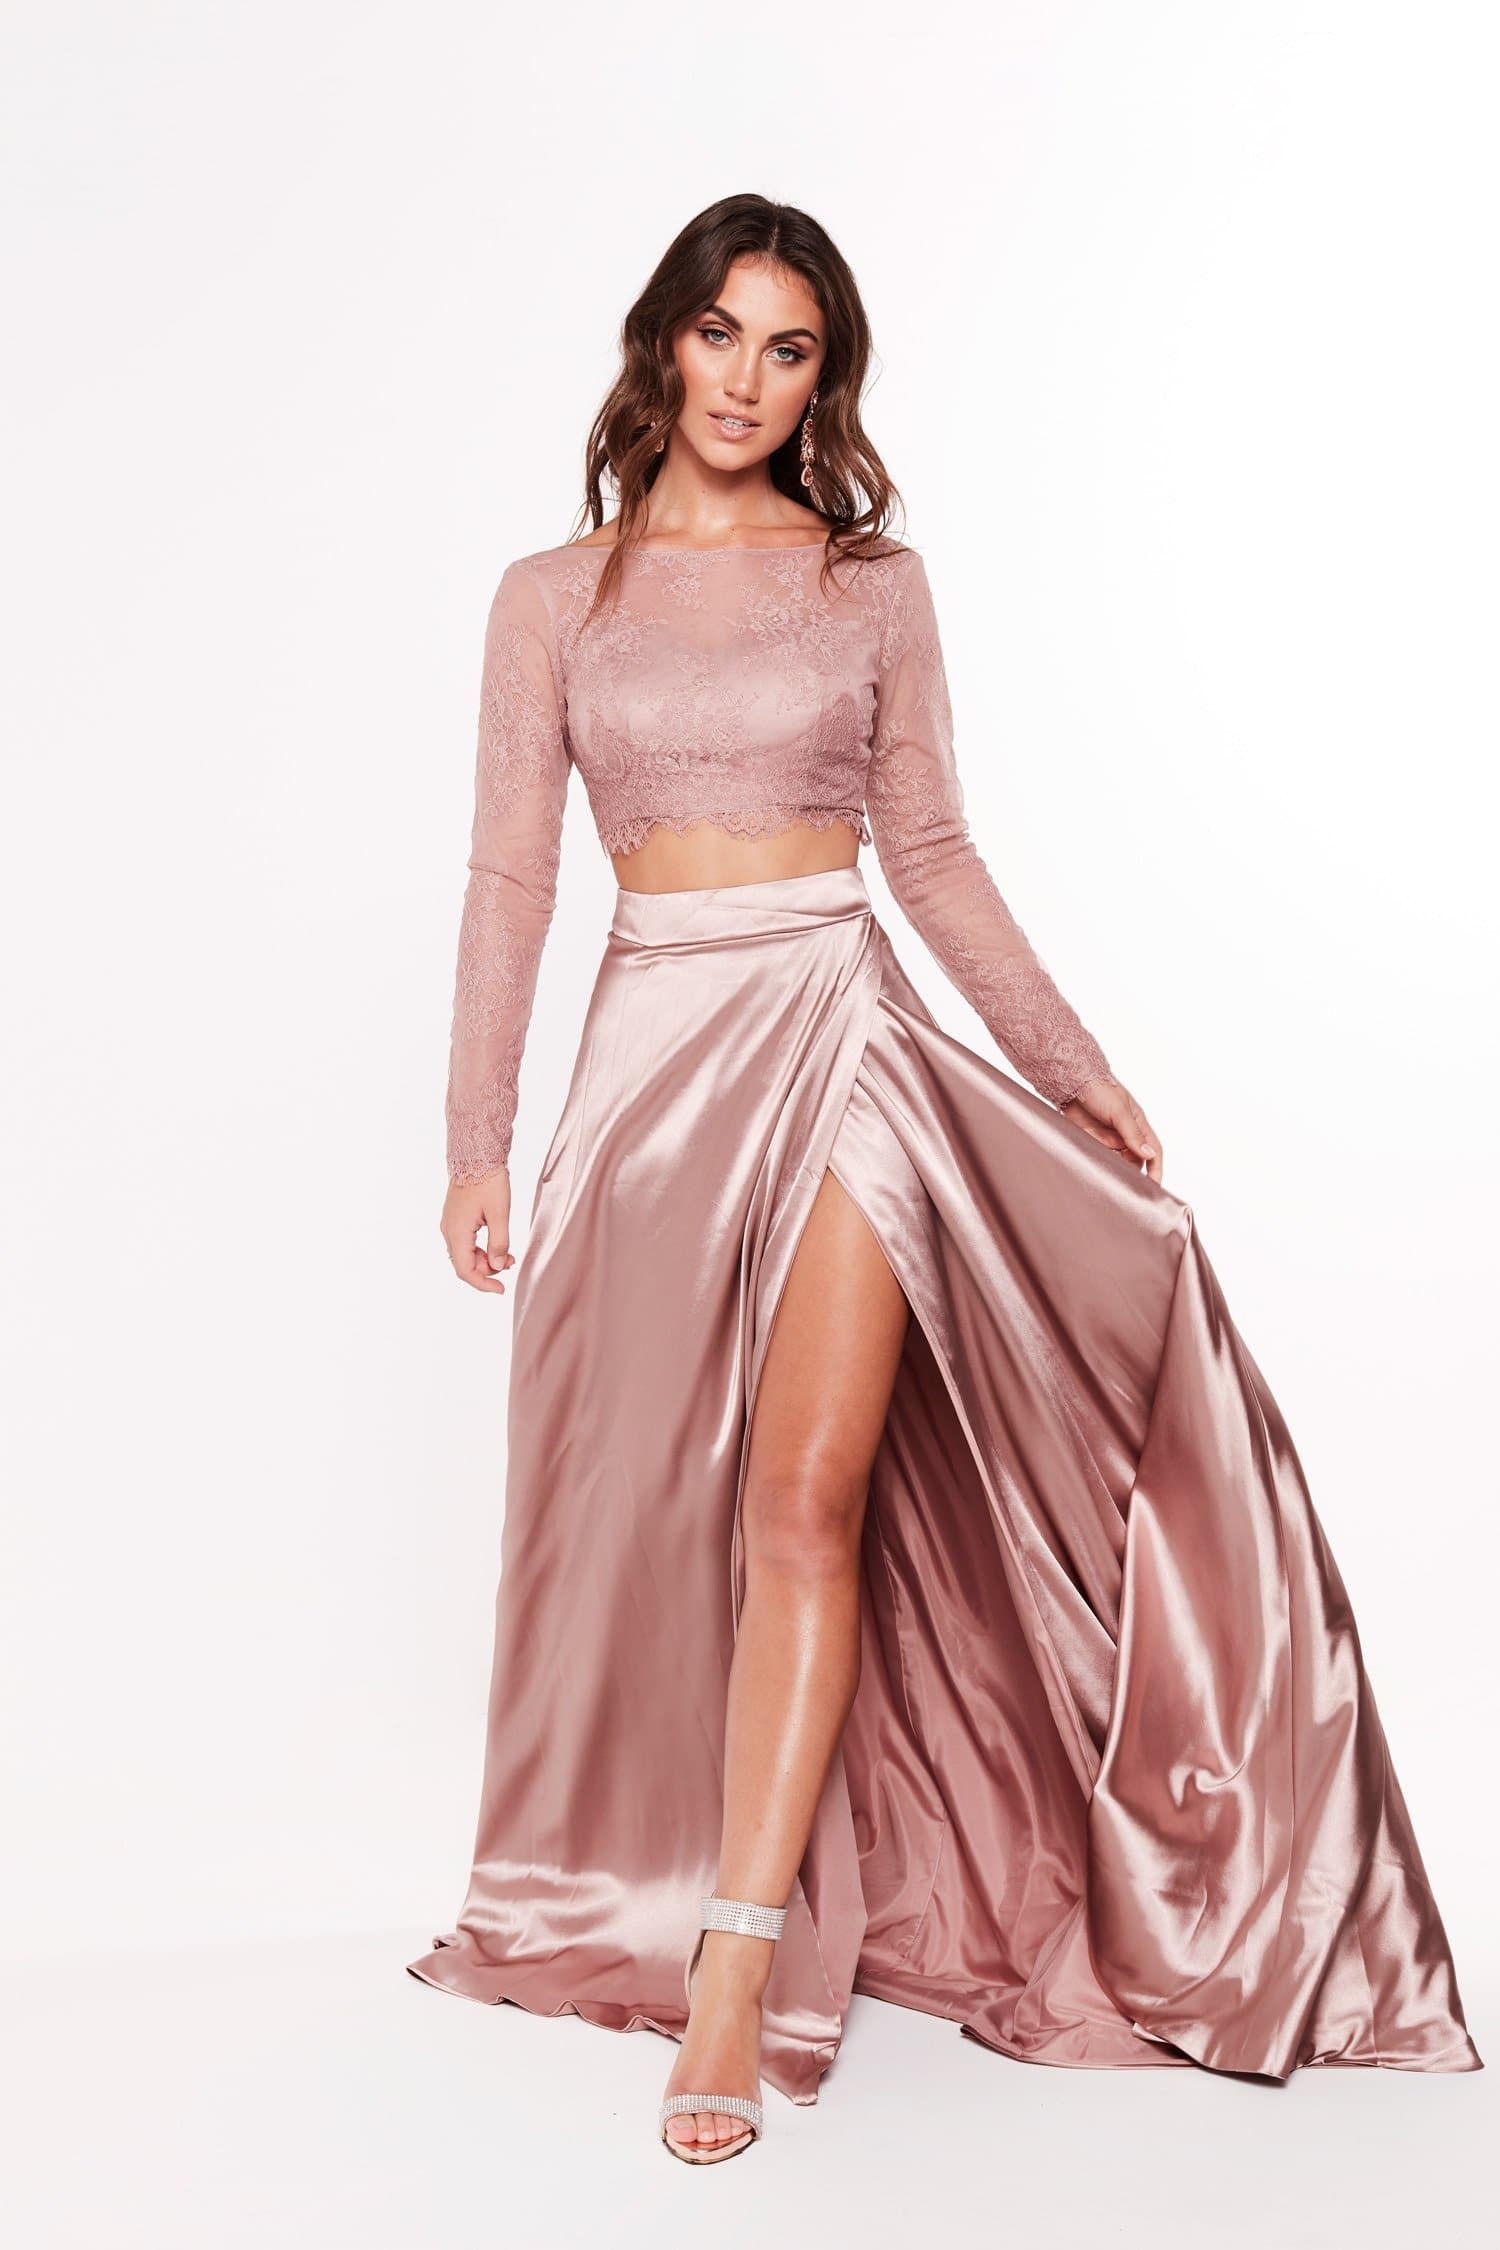 A&N Katerina - Mauve Satin Lace Two Piece With Hidden Slit